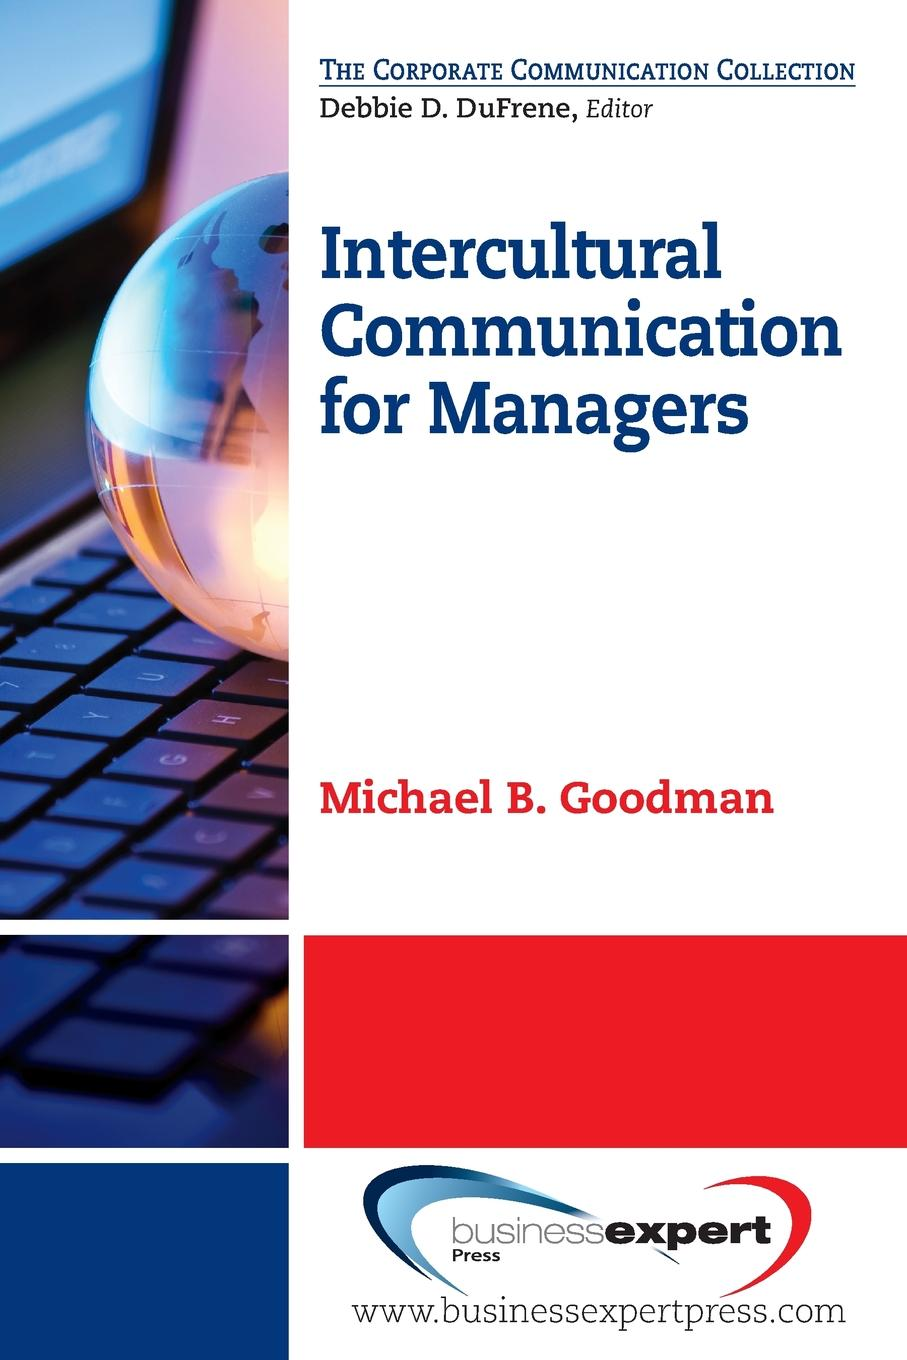 Michael Goodman Intercultural Communication for Managers jordan d lewis trusted partners how companies build mutual trust and win together